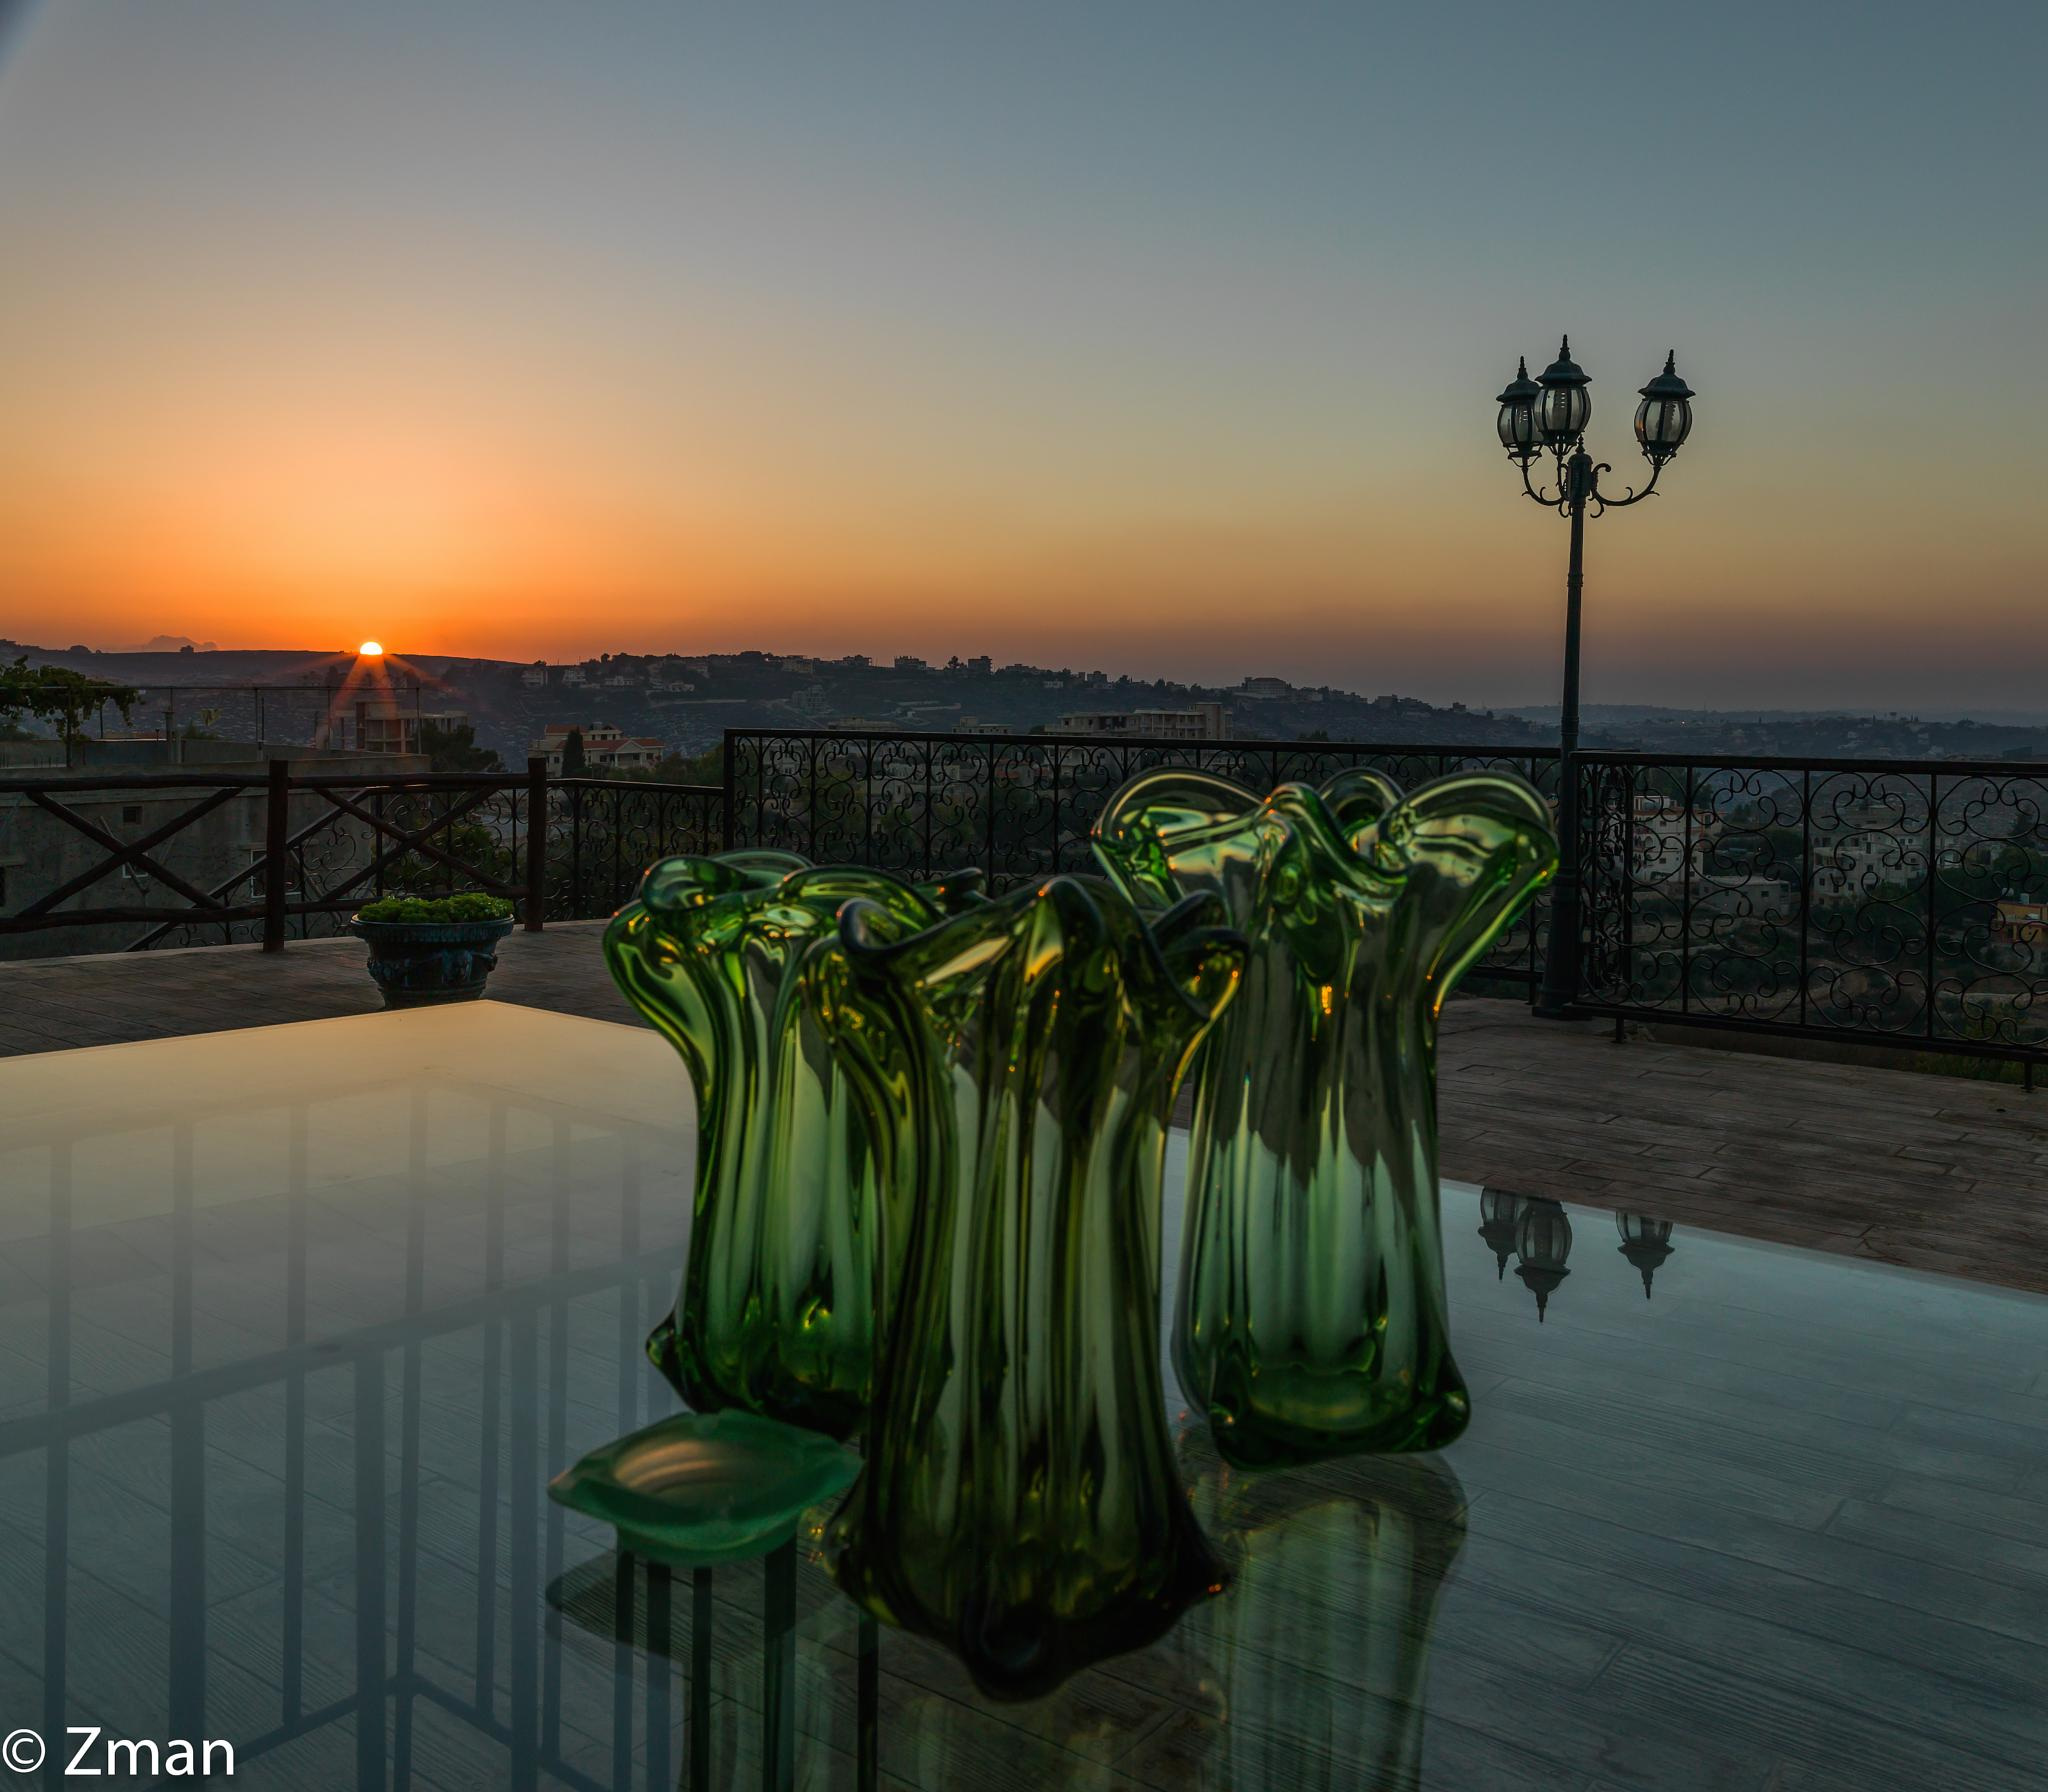 Vases and Sunset by muhammad.nasser.963